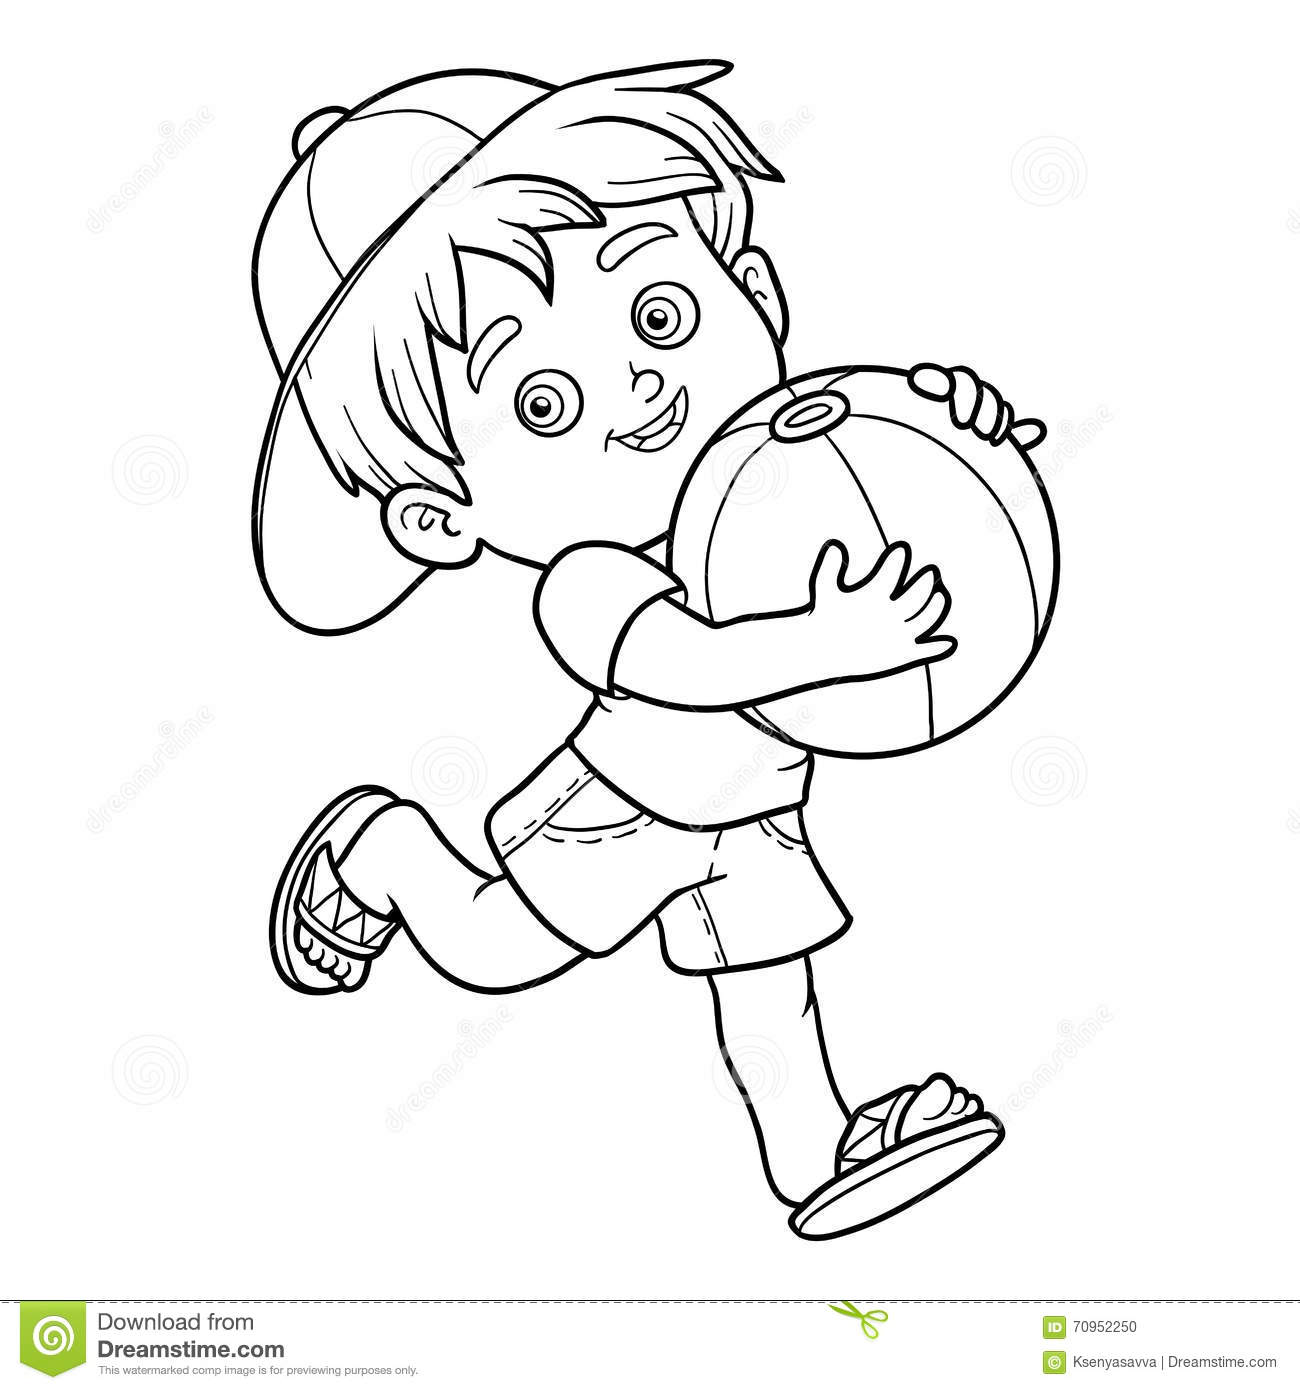 coloring clipart boy cute baby boy coloring page free clip art boy clipart coloring